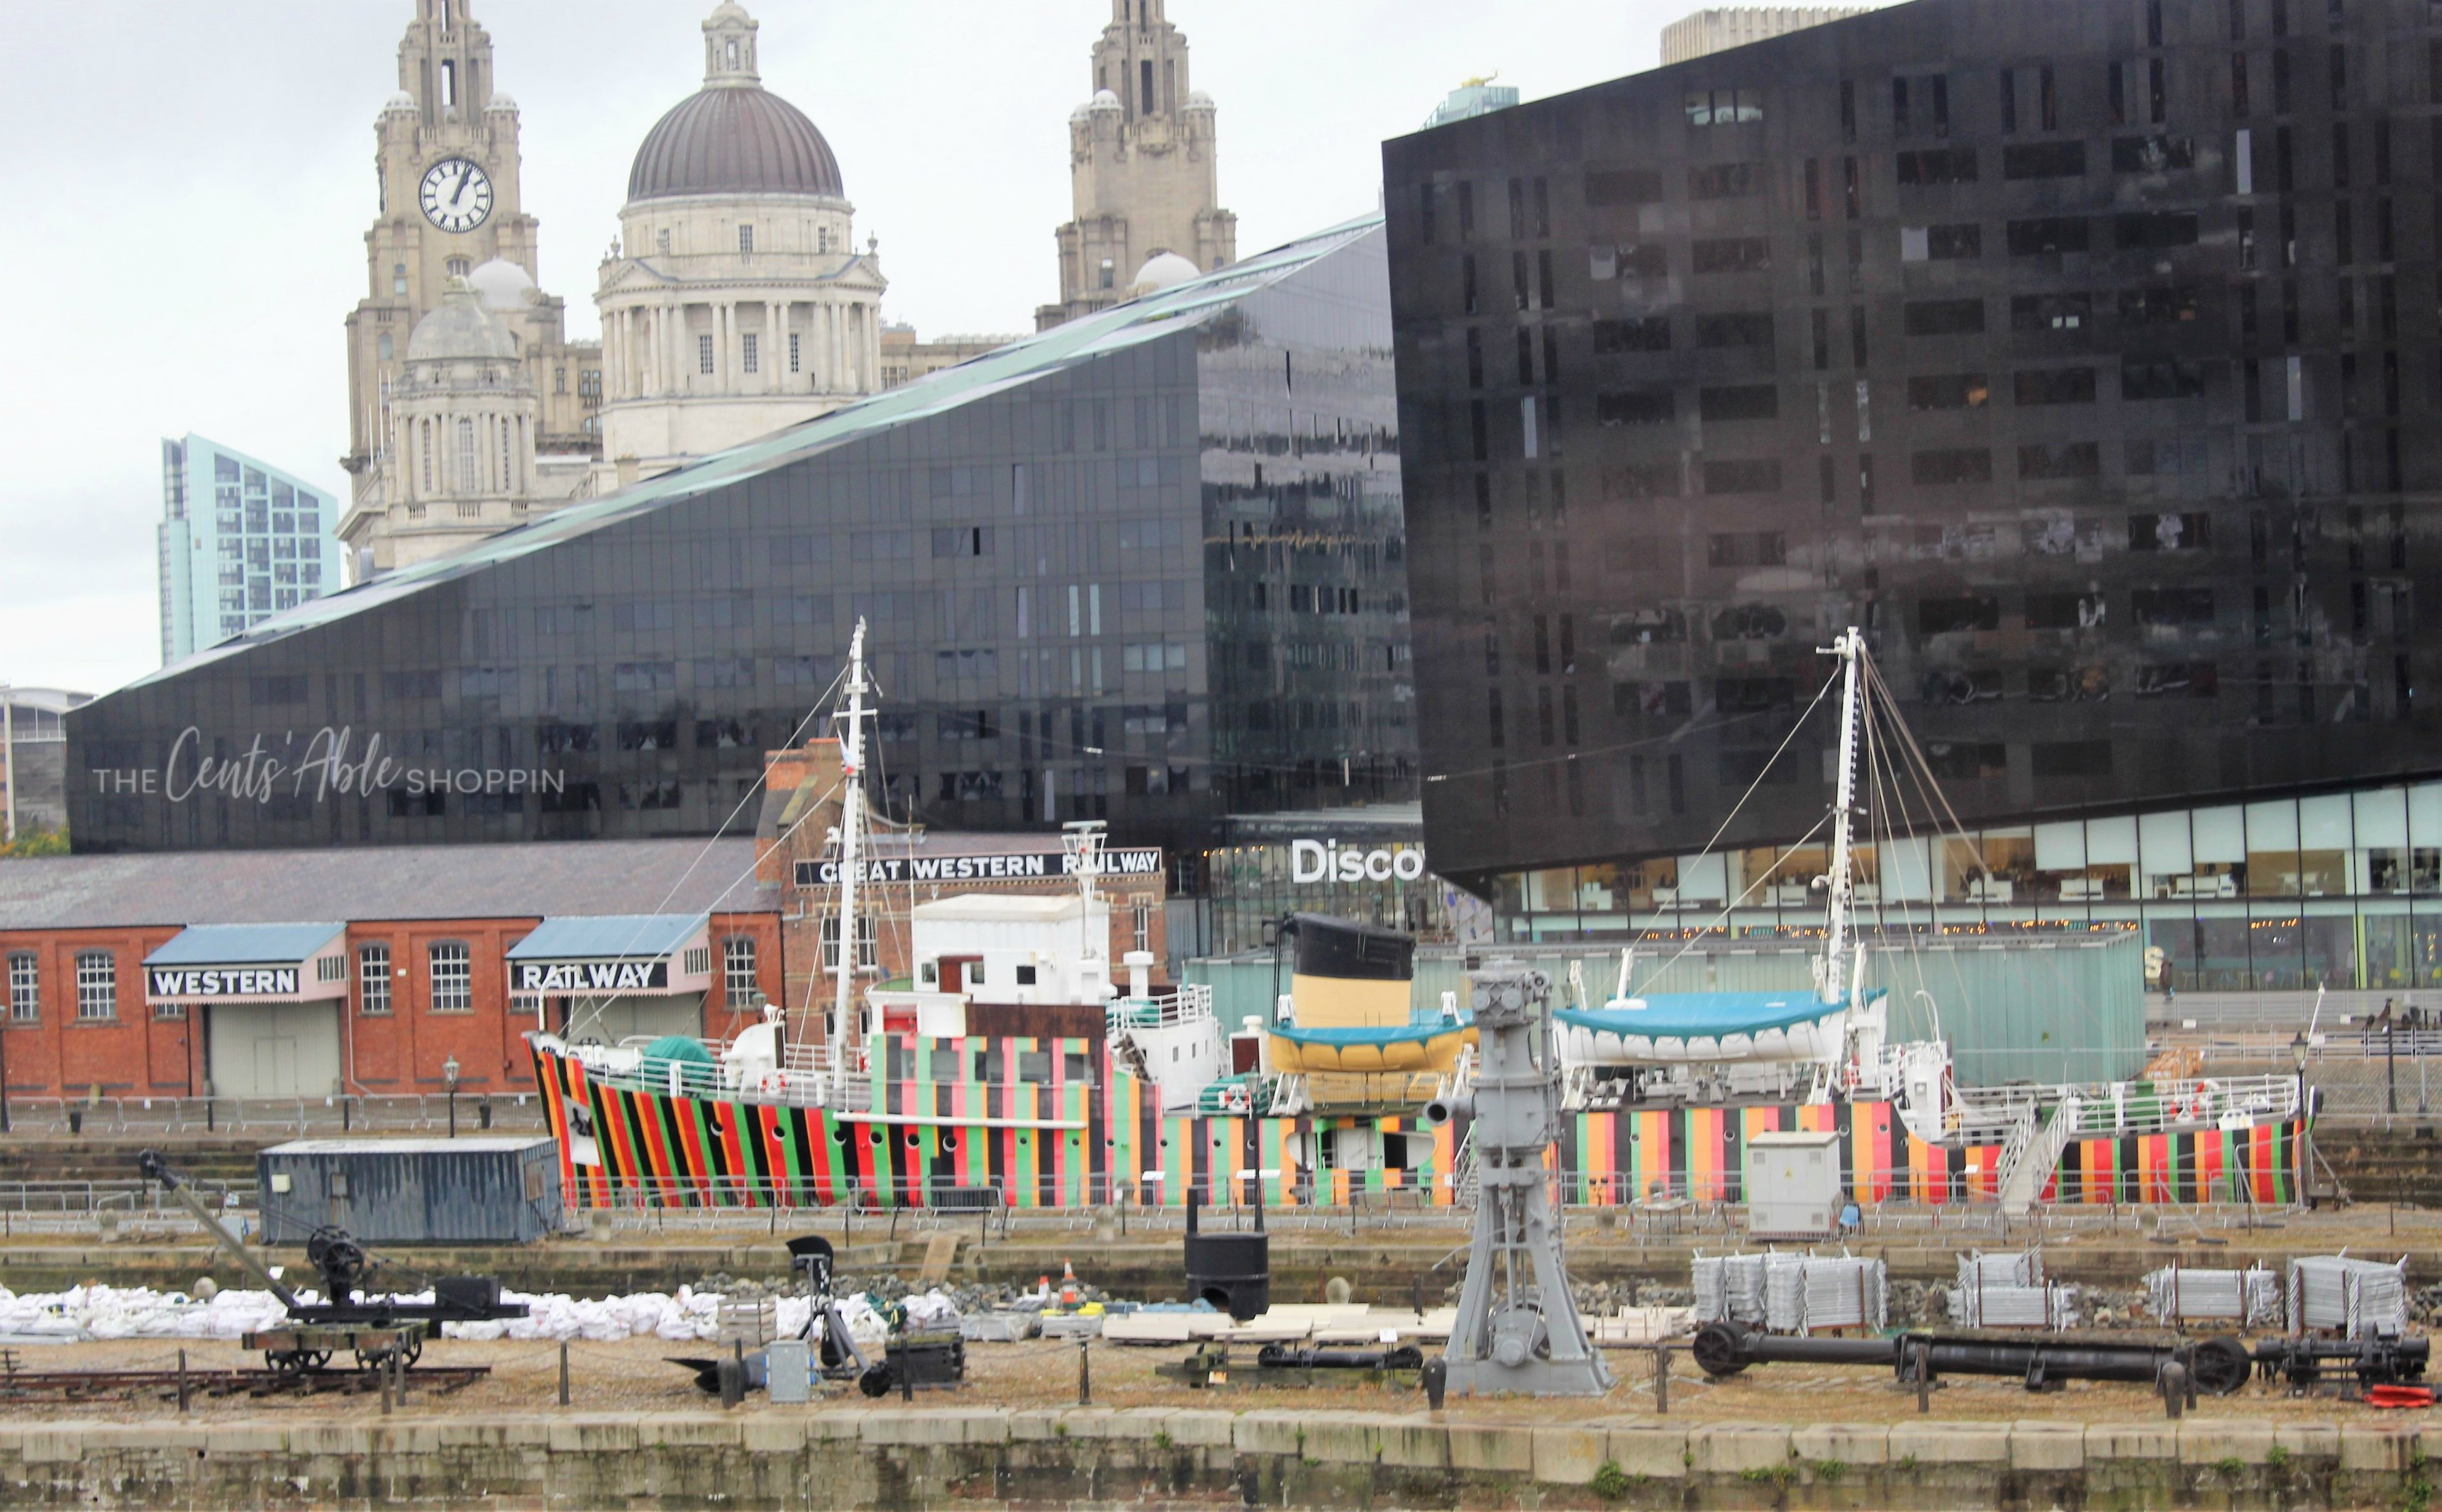 Explore Liverpool, England! Beatles fans flock to this beautiful city for its musical culture and nightlife - there's so much to see and do!  #Liverpool #England #UnitedKingdom